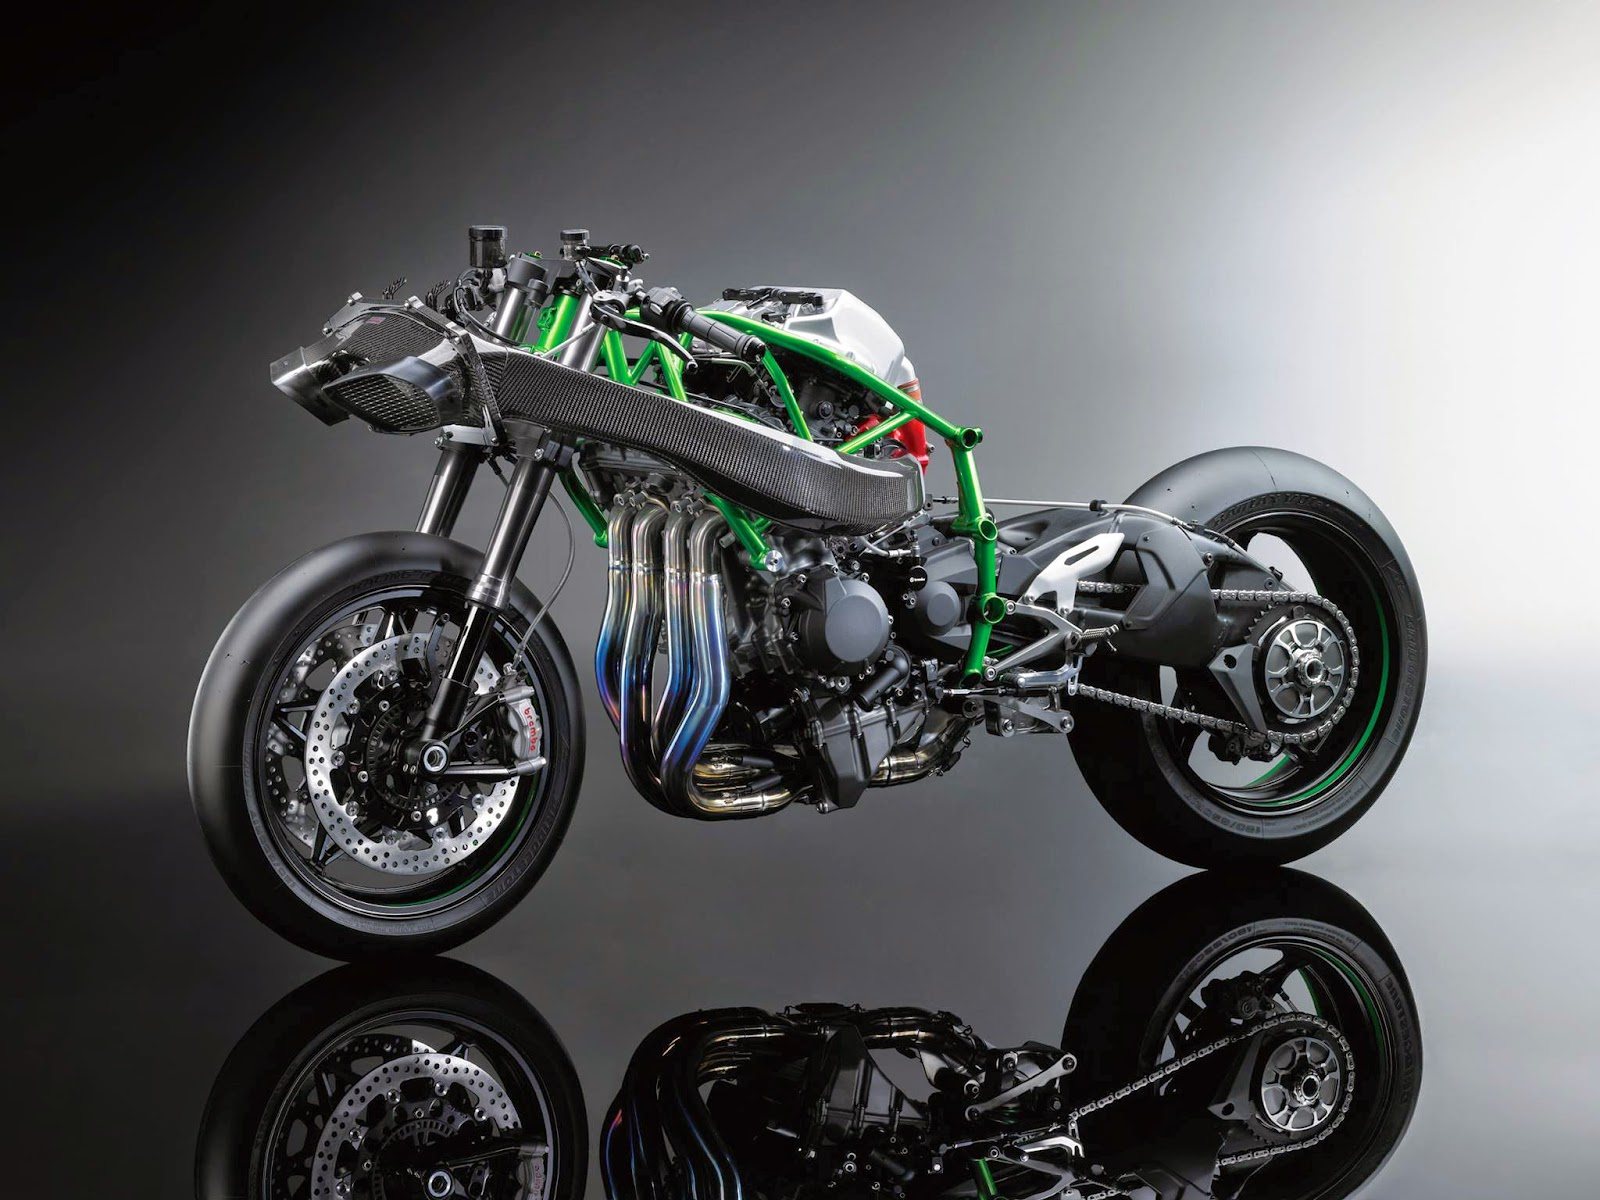 racing caf kawasaki ninja h2r concept intermot 2014. Black Bedroom Furniture Sets. Home Design Ideas